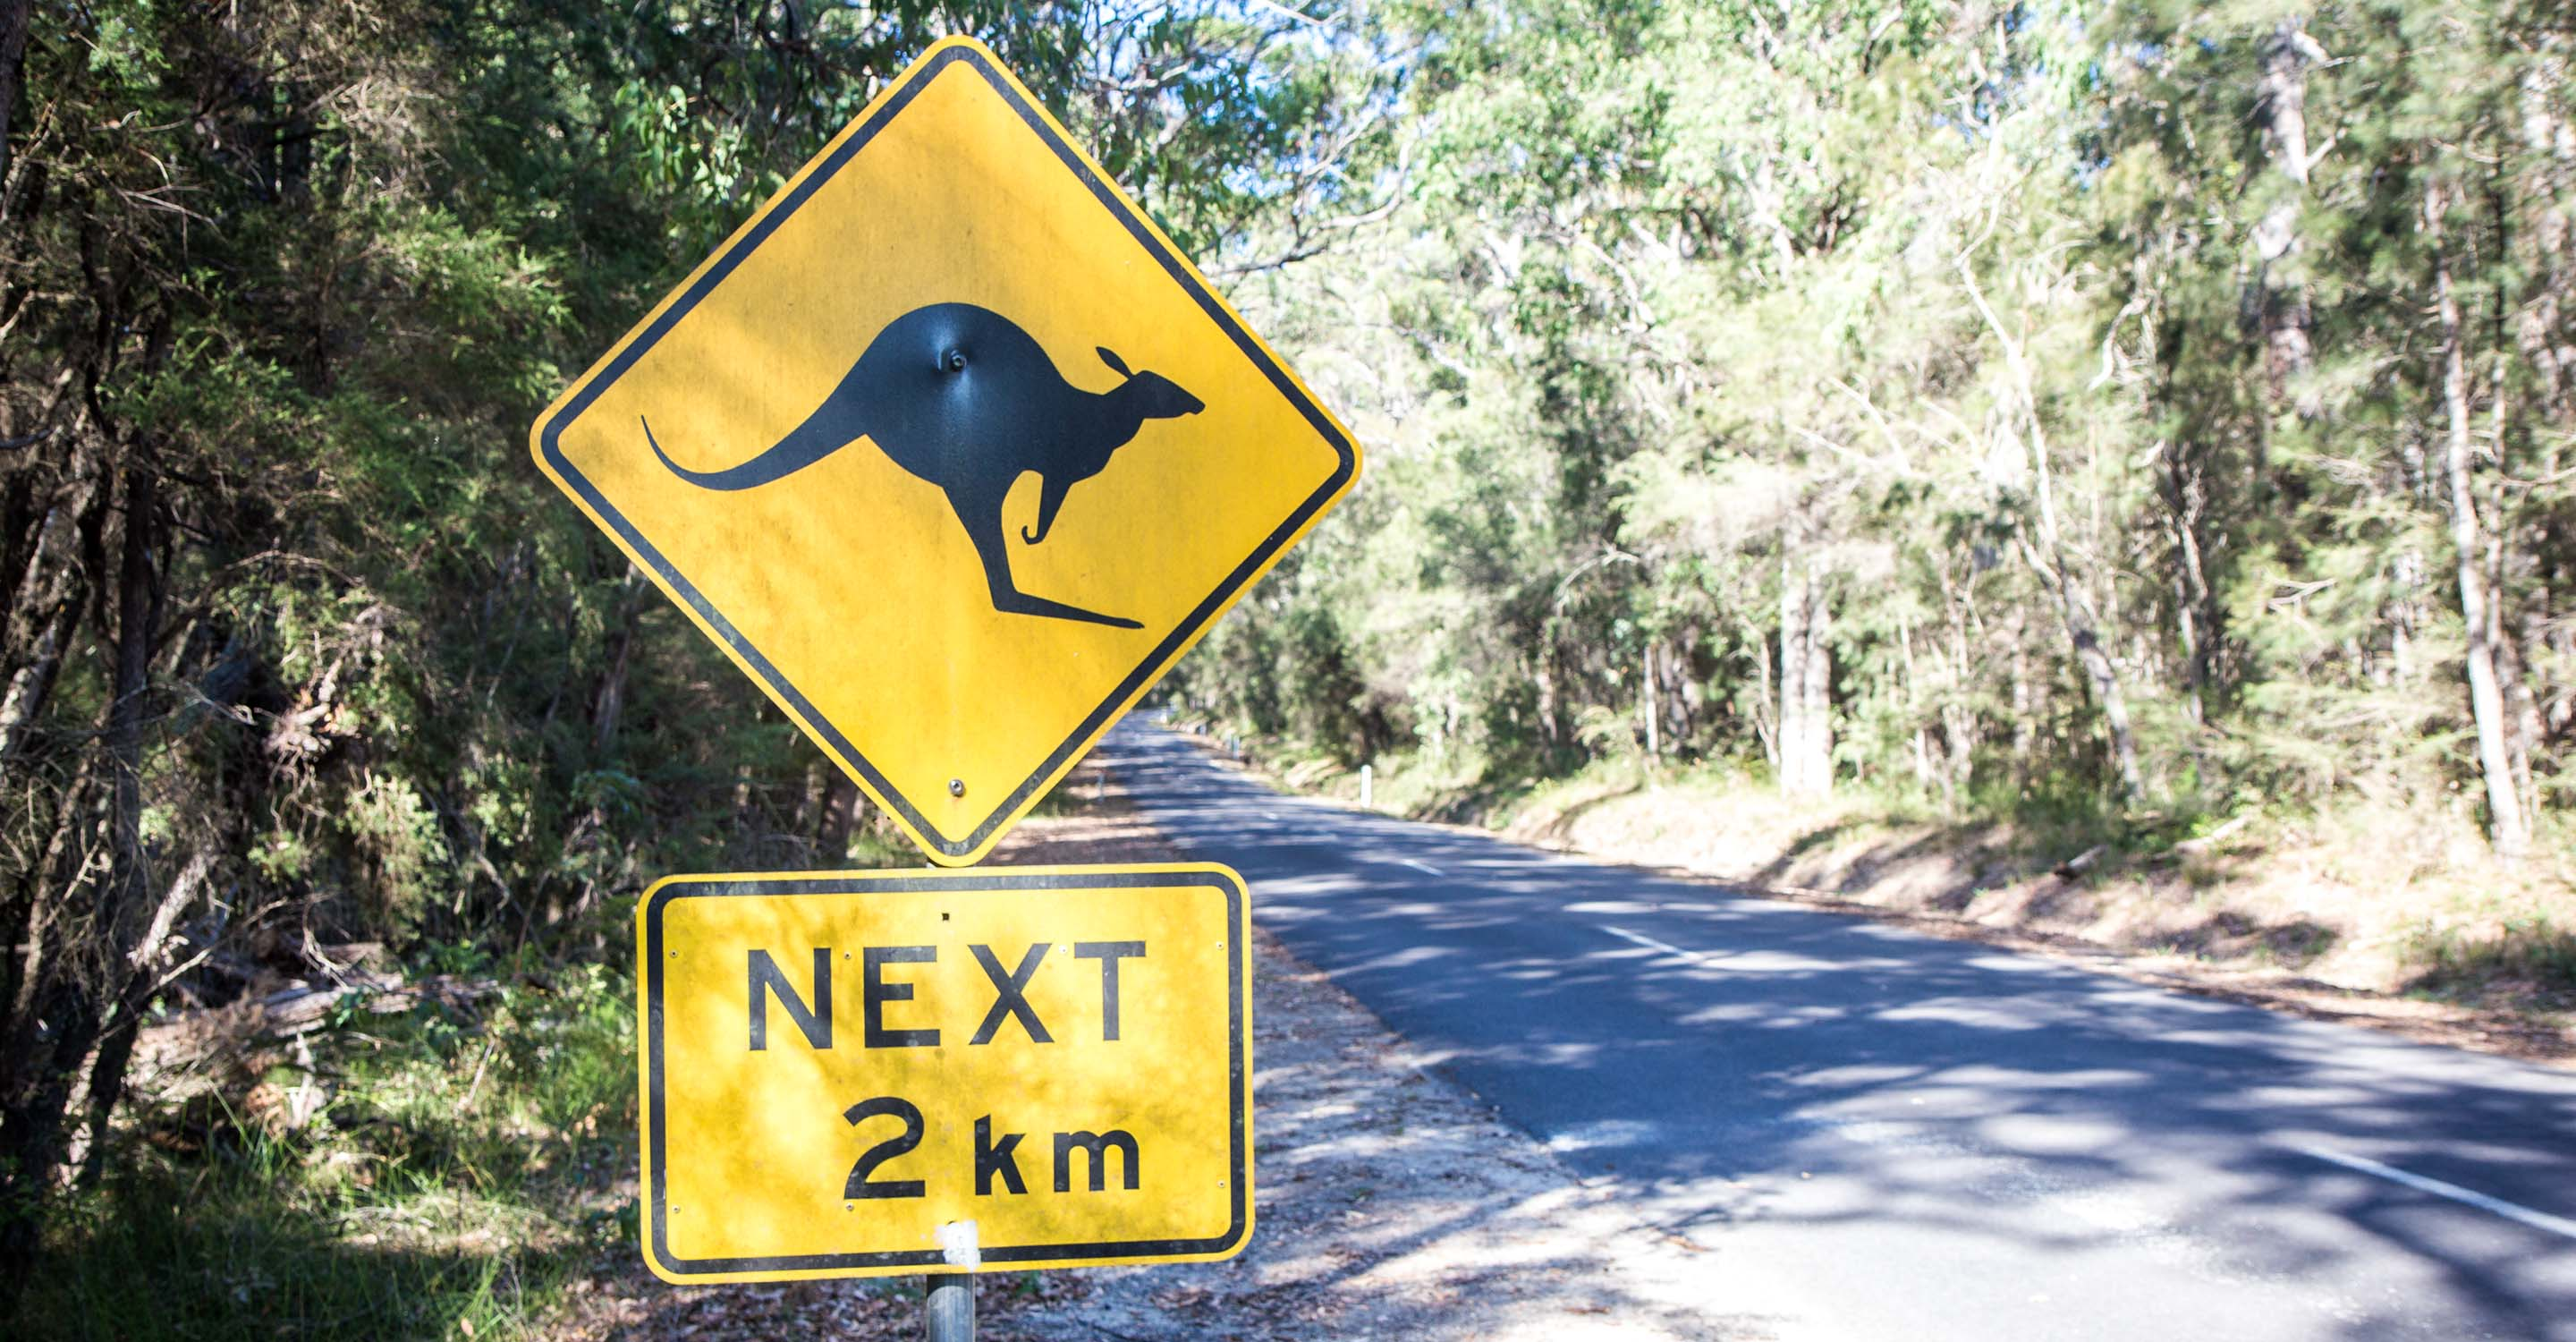 Melbourne to Sydney road trip: your complete day-by-day guide